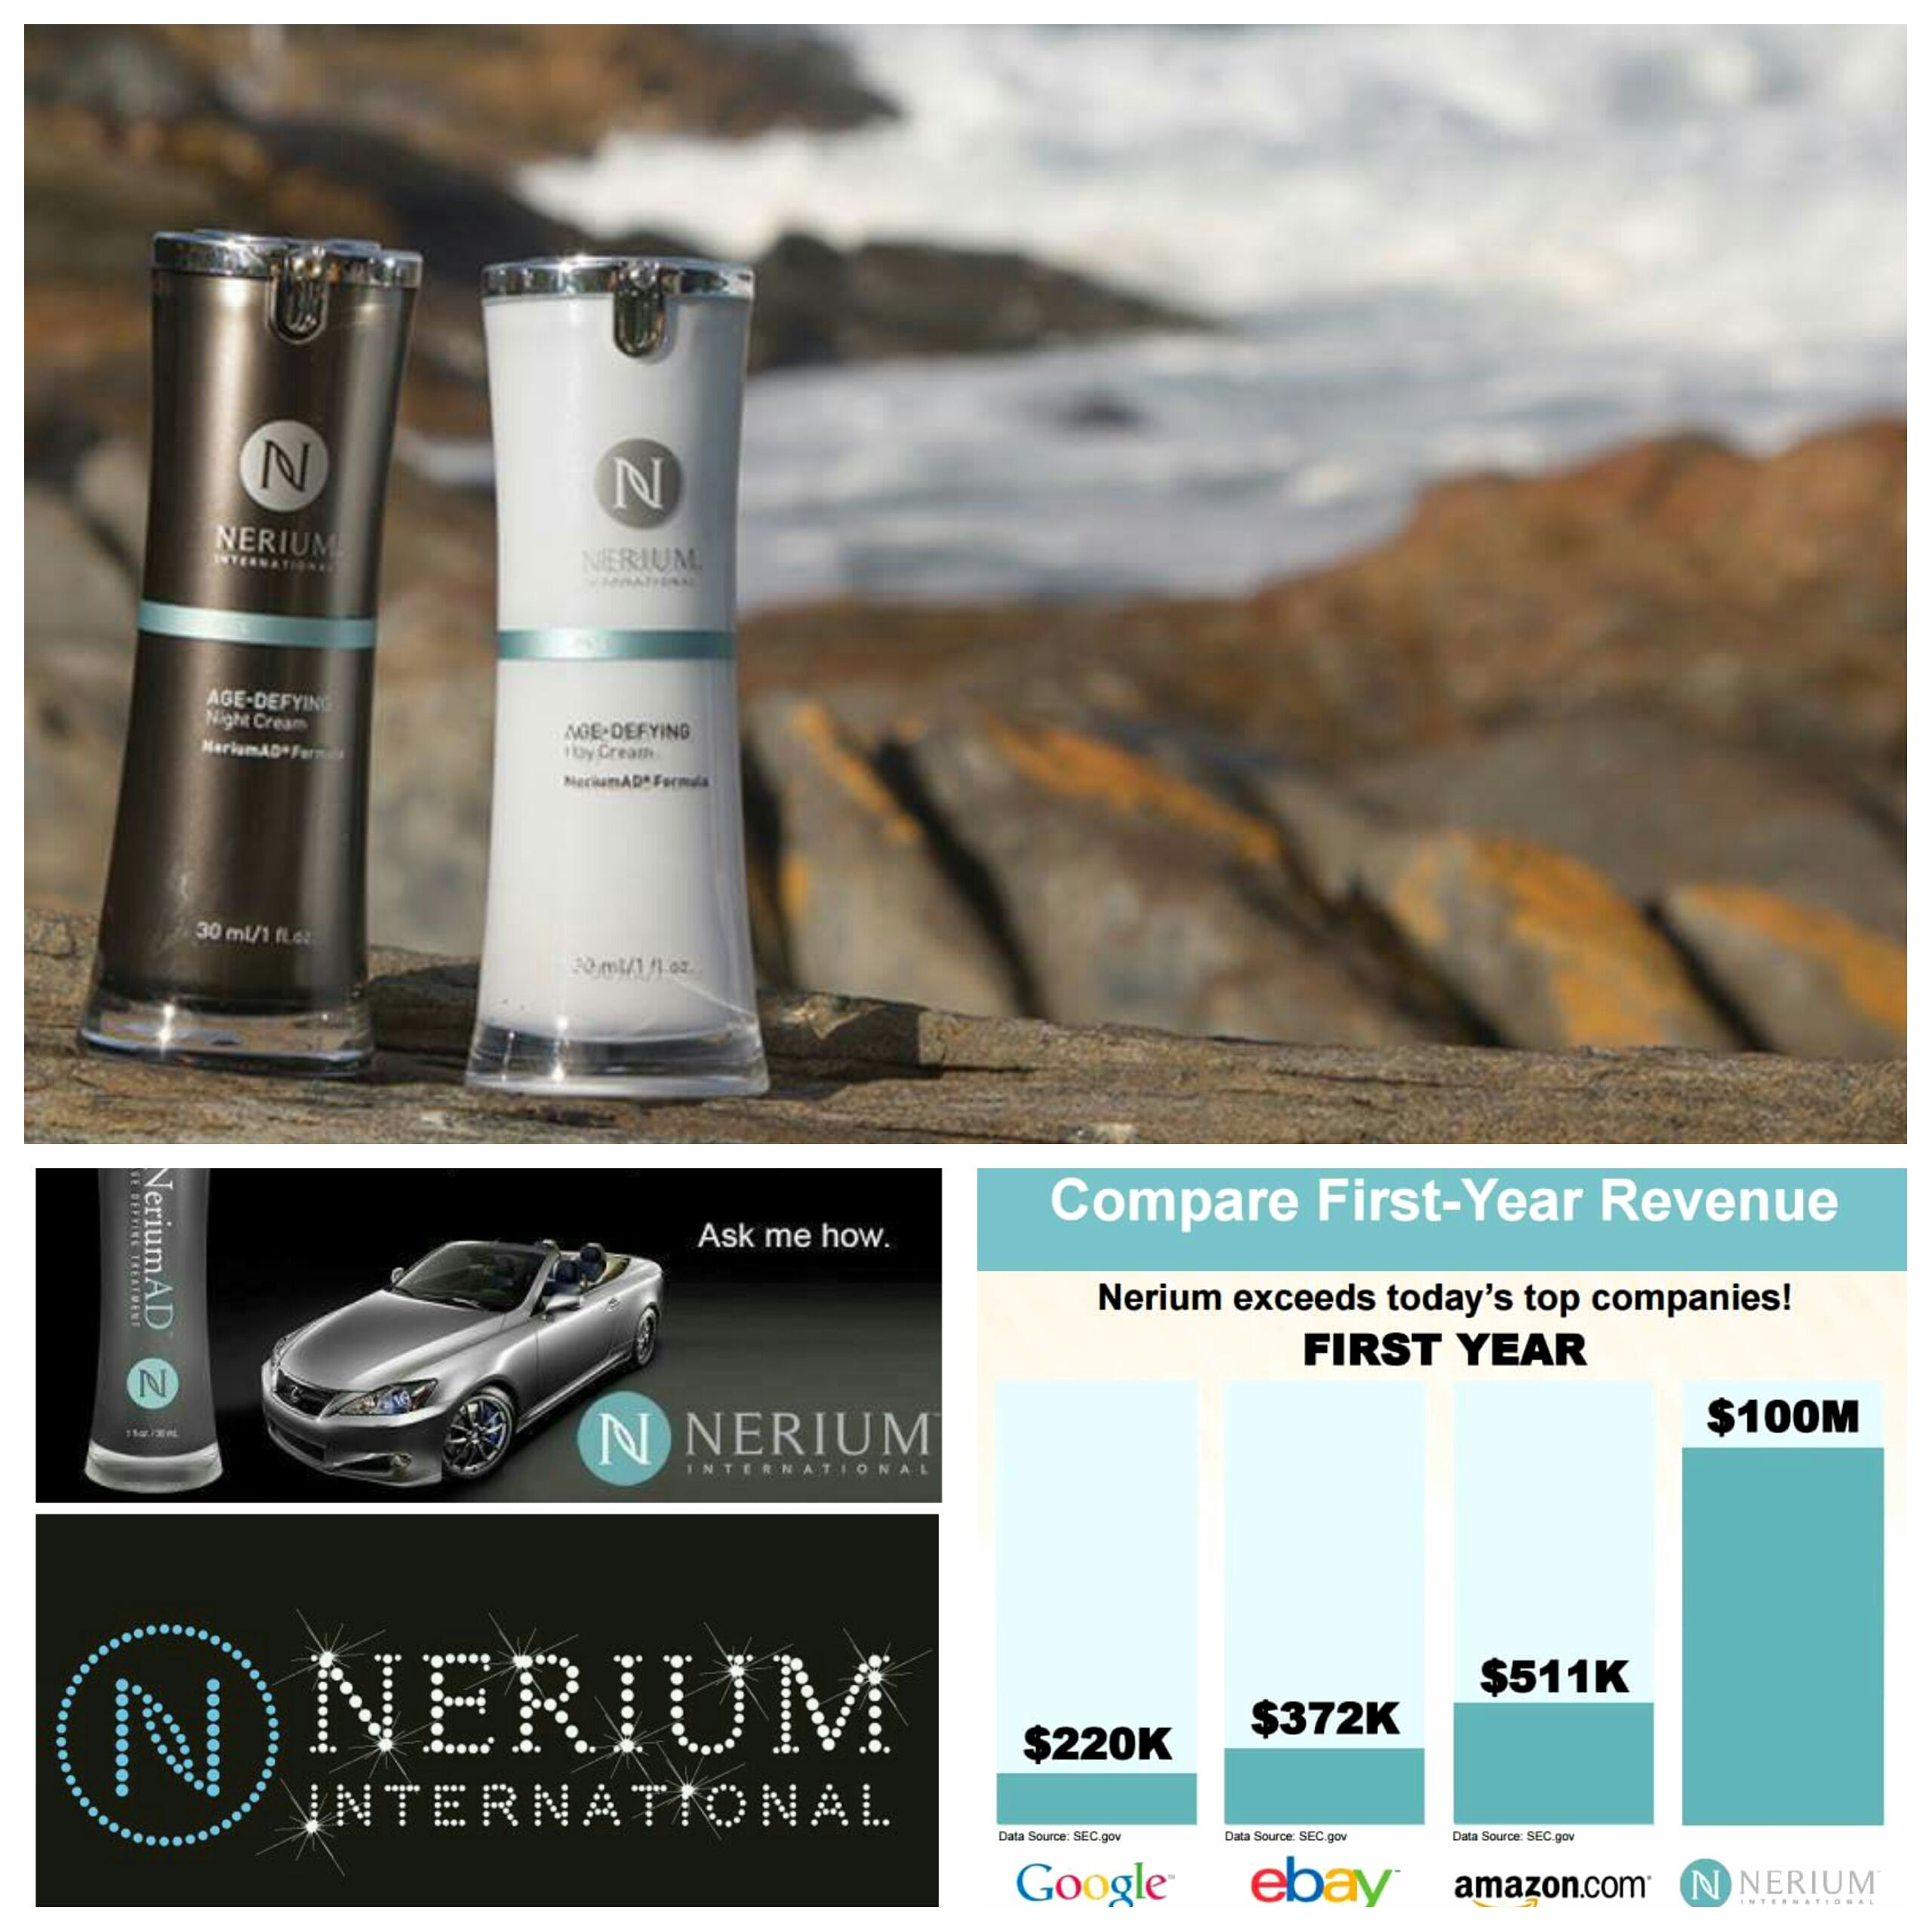 7 Powerful Benefits Nerium Brand Partners Have That Have Nothing To Do With Weekly Paychecks - Article, Click to Read